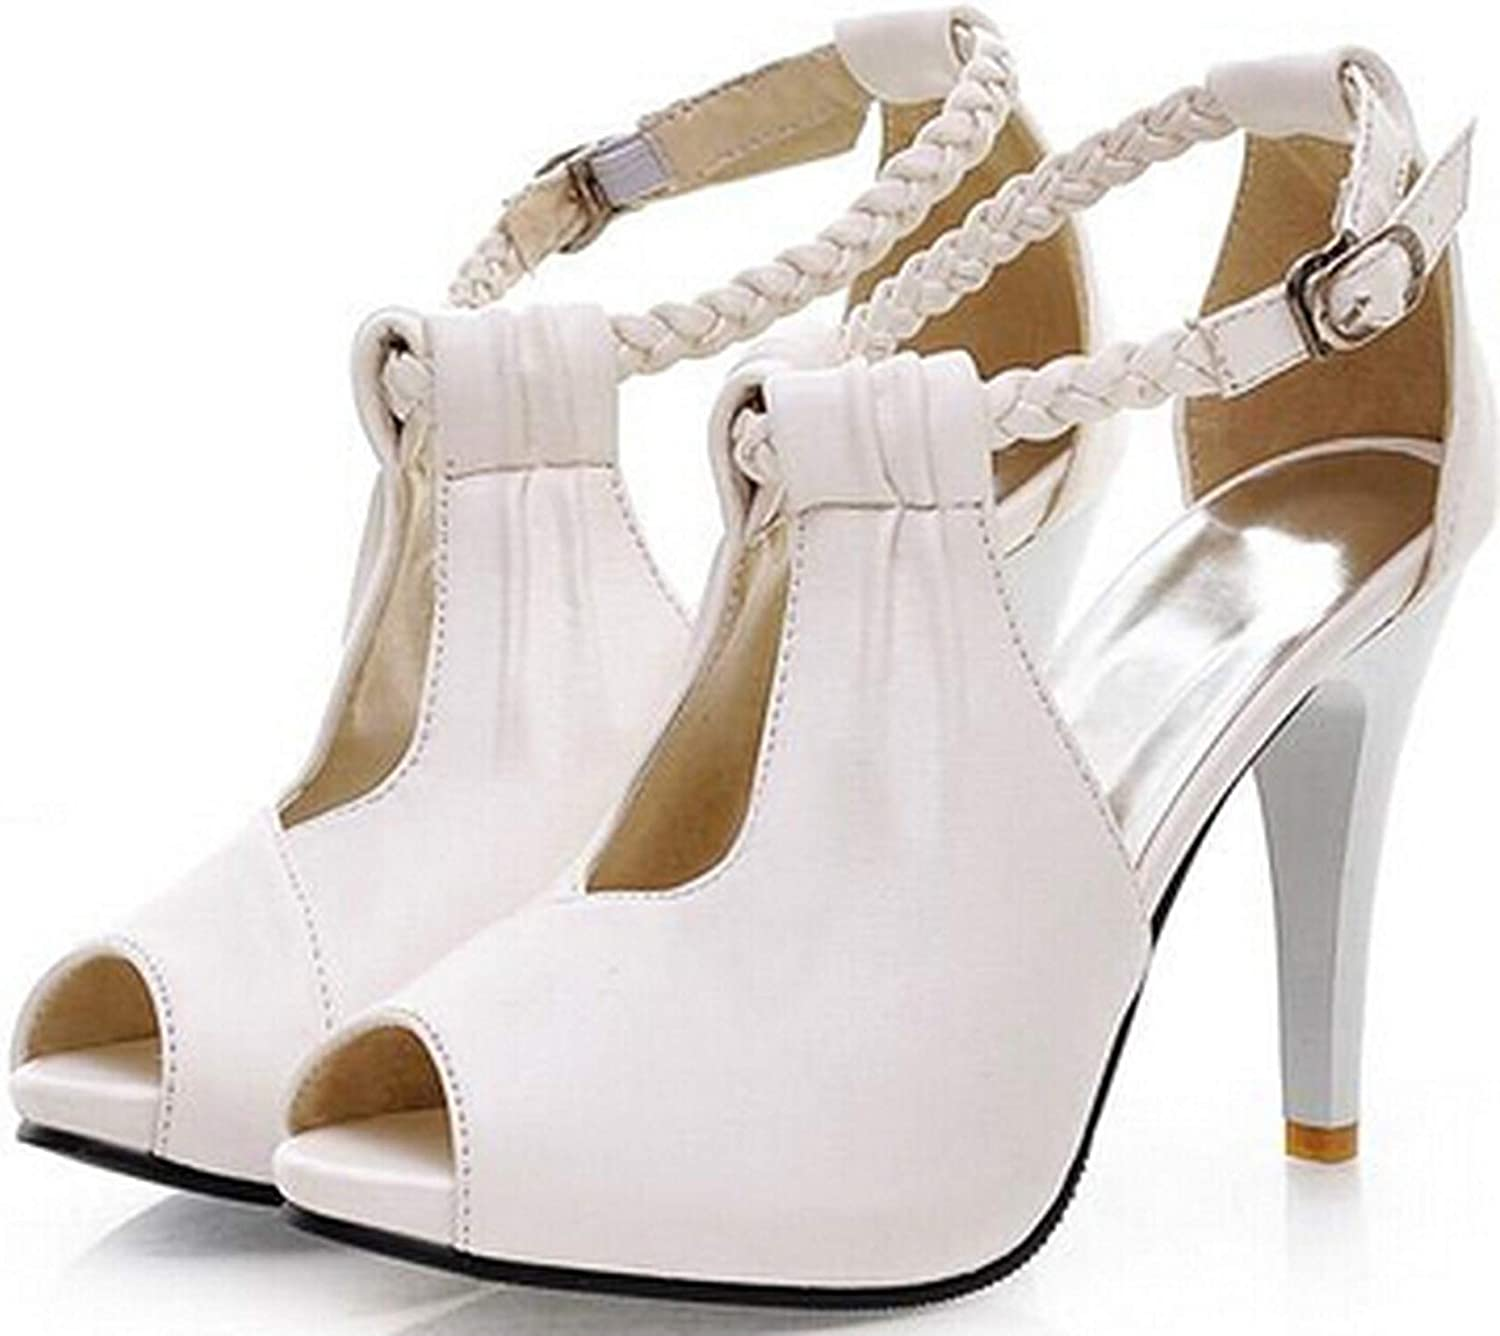 Sexy Women Sandals High Heeled Summer Single shoes Design High Heels shoes 34-43,White,11